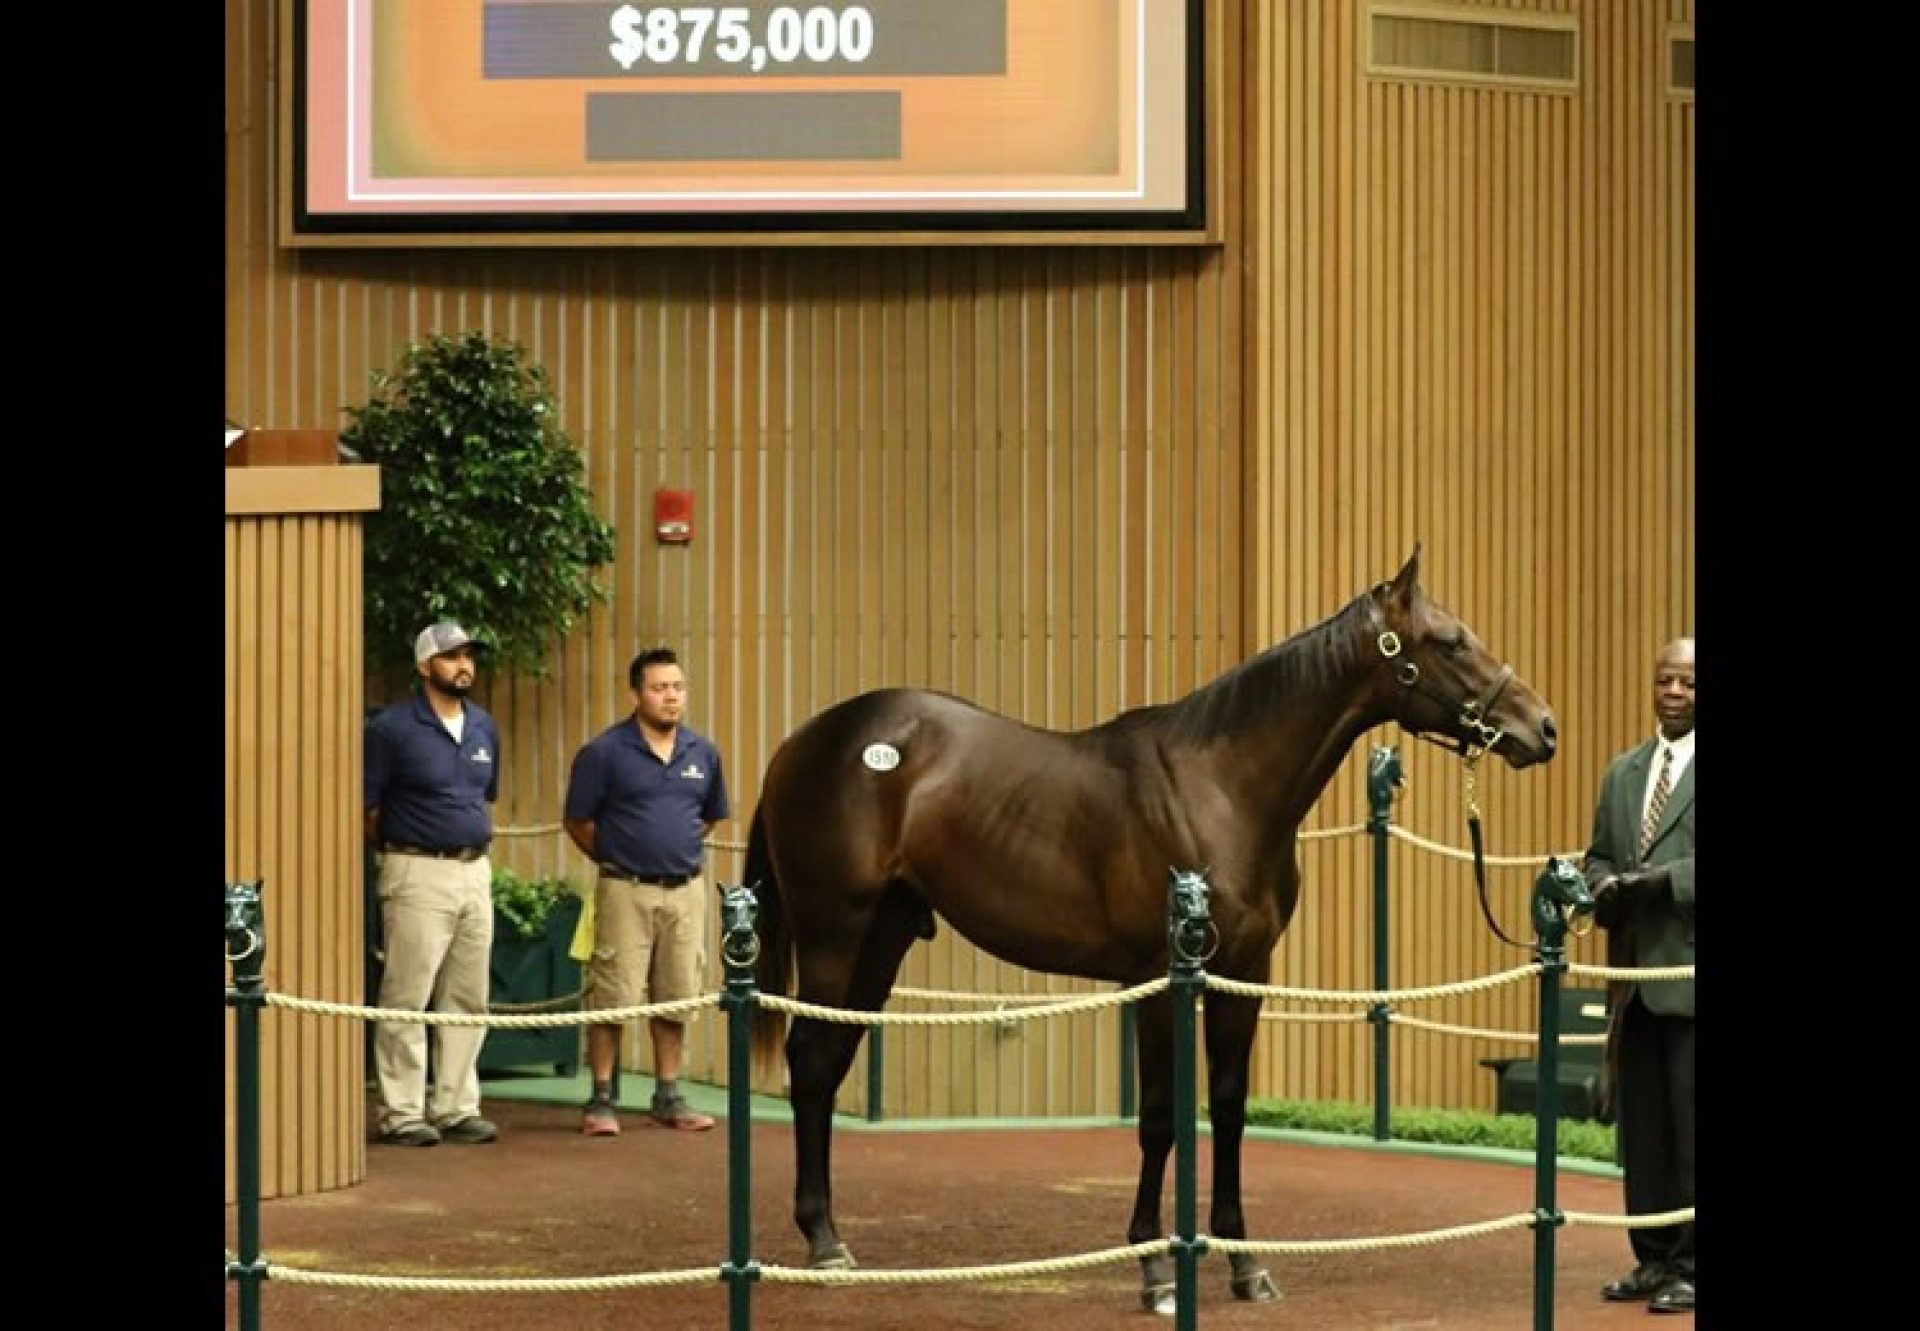 Uncle Mo ex Morena yearling colt selling for $875,000 at Keeneland